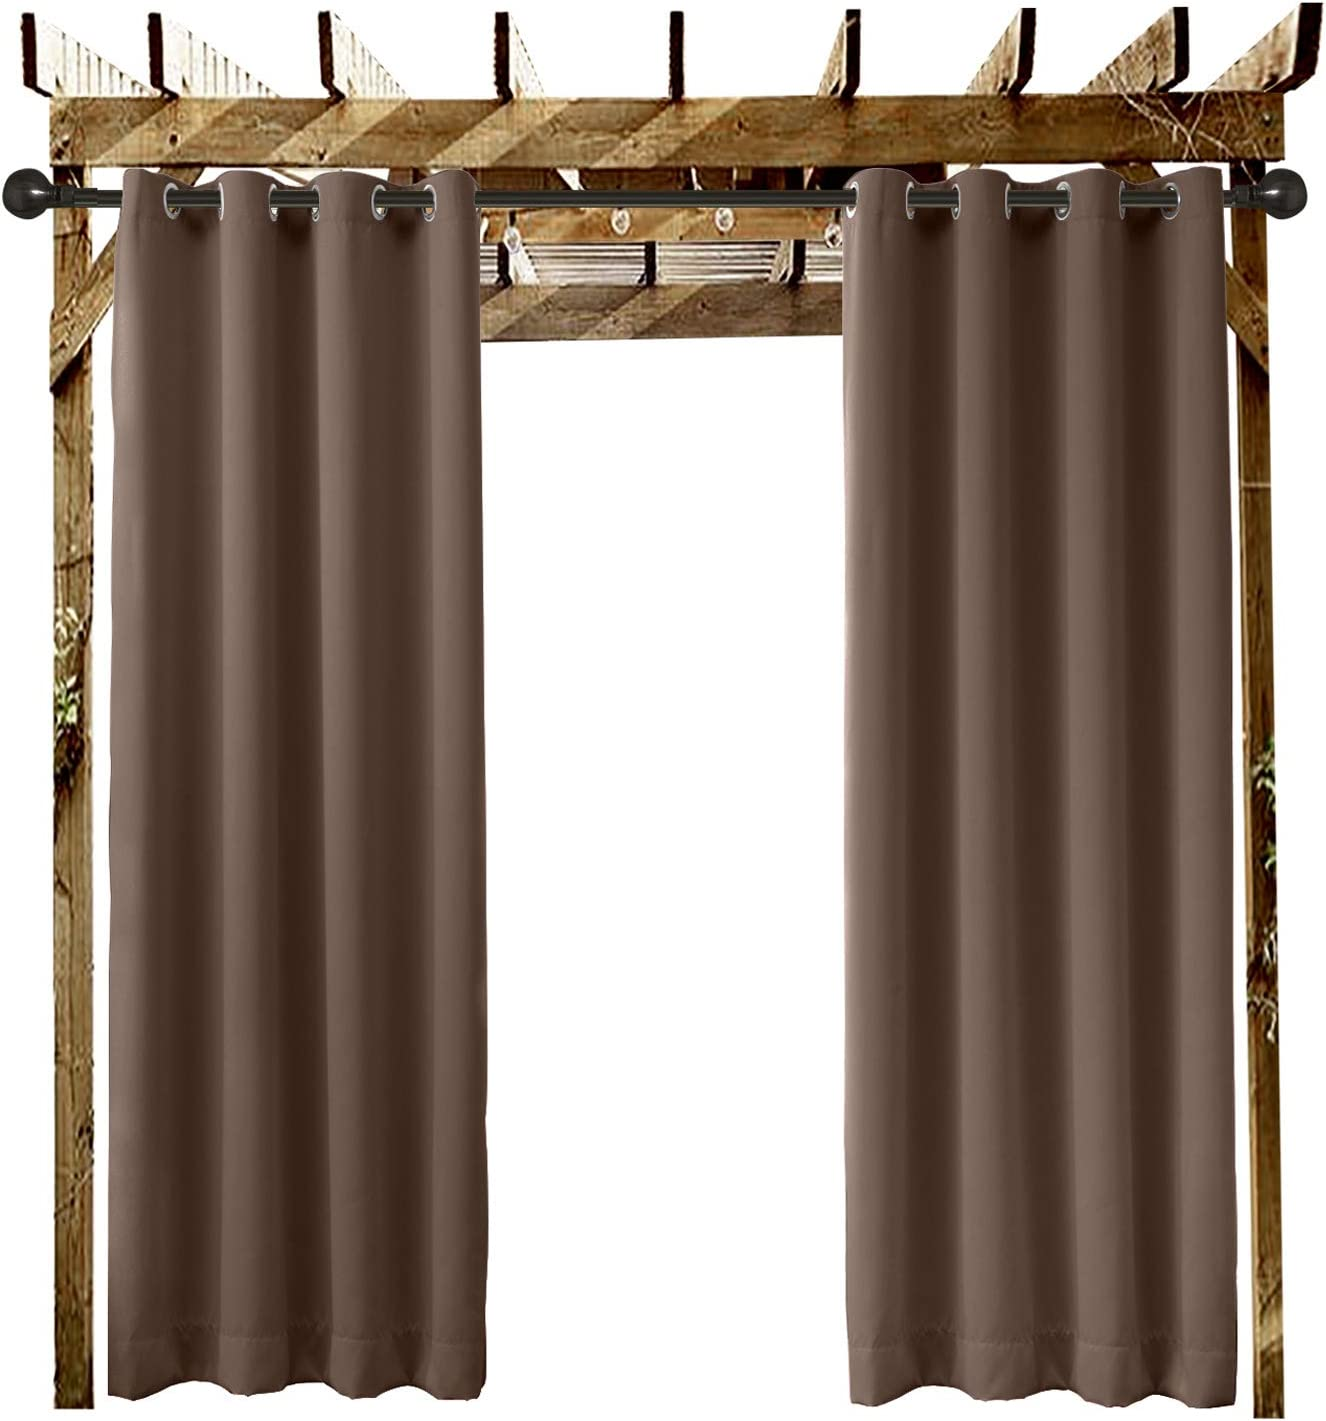 Covered Patio Outdoor Curtain Grommet Eyelet Chocolate 84 W x 102 L For Front Porch . and Beach Home Gazebo 1 Panel Dock Pergola Cabana